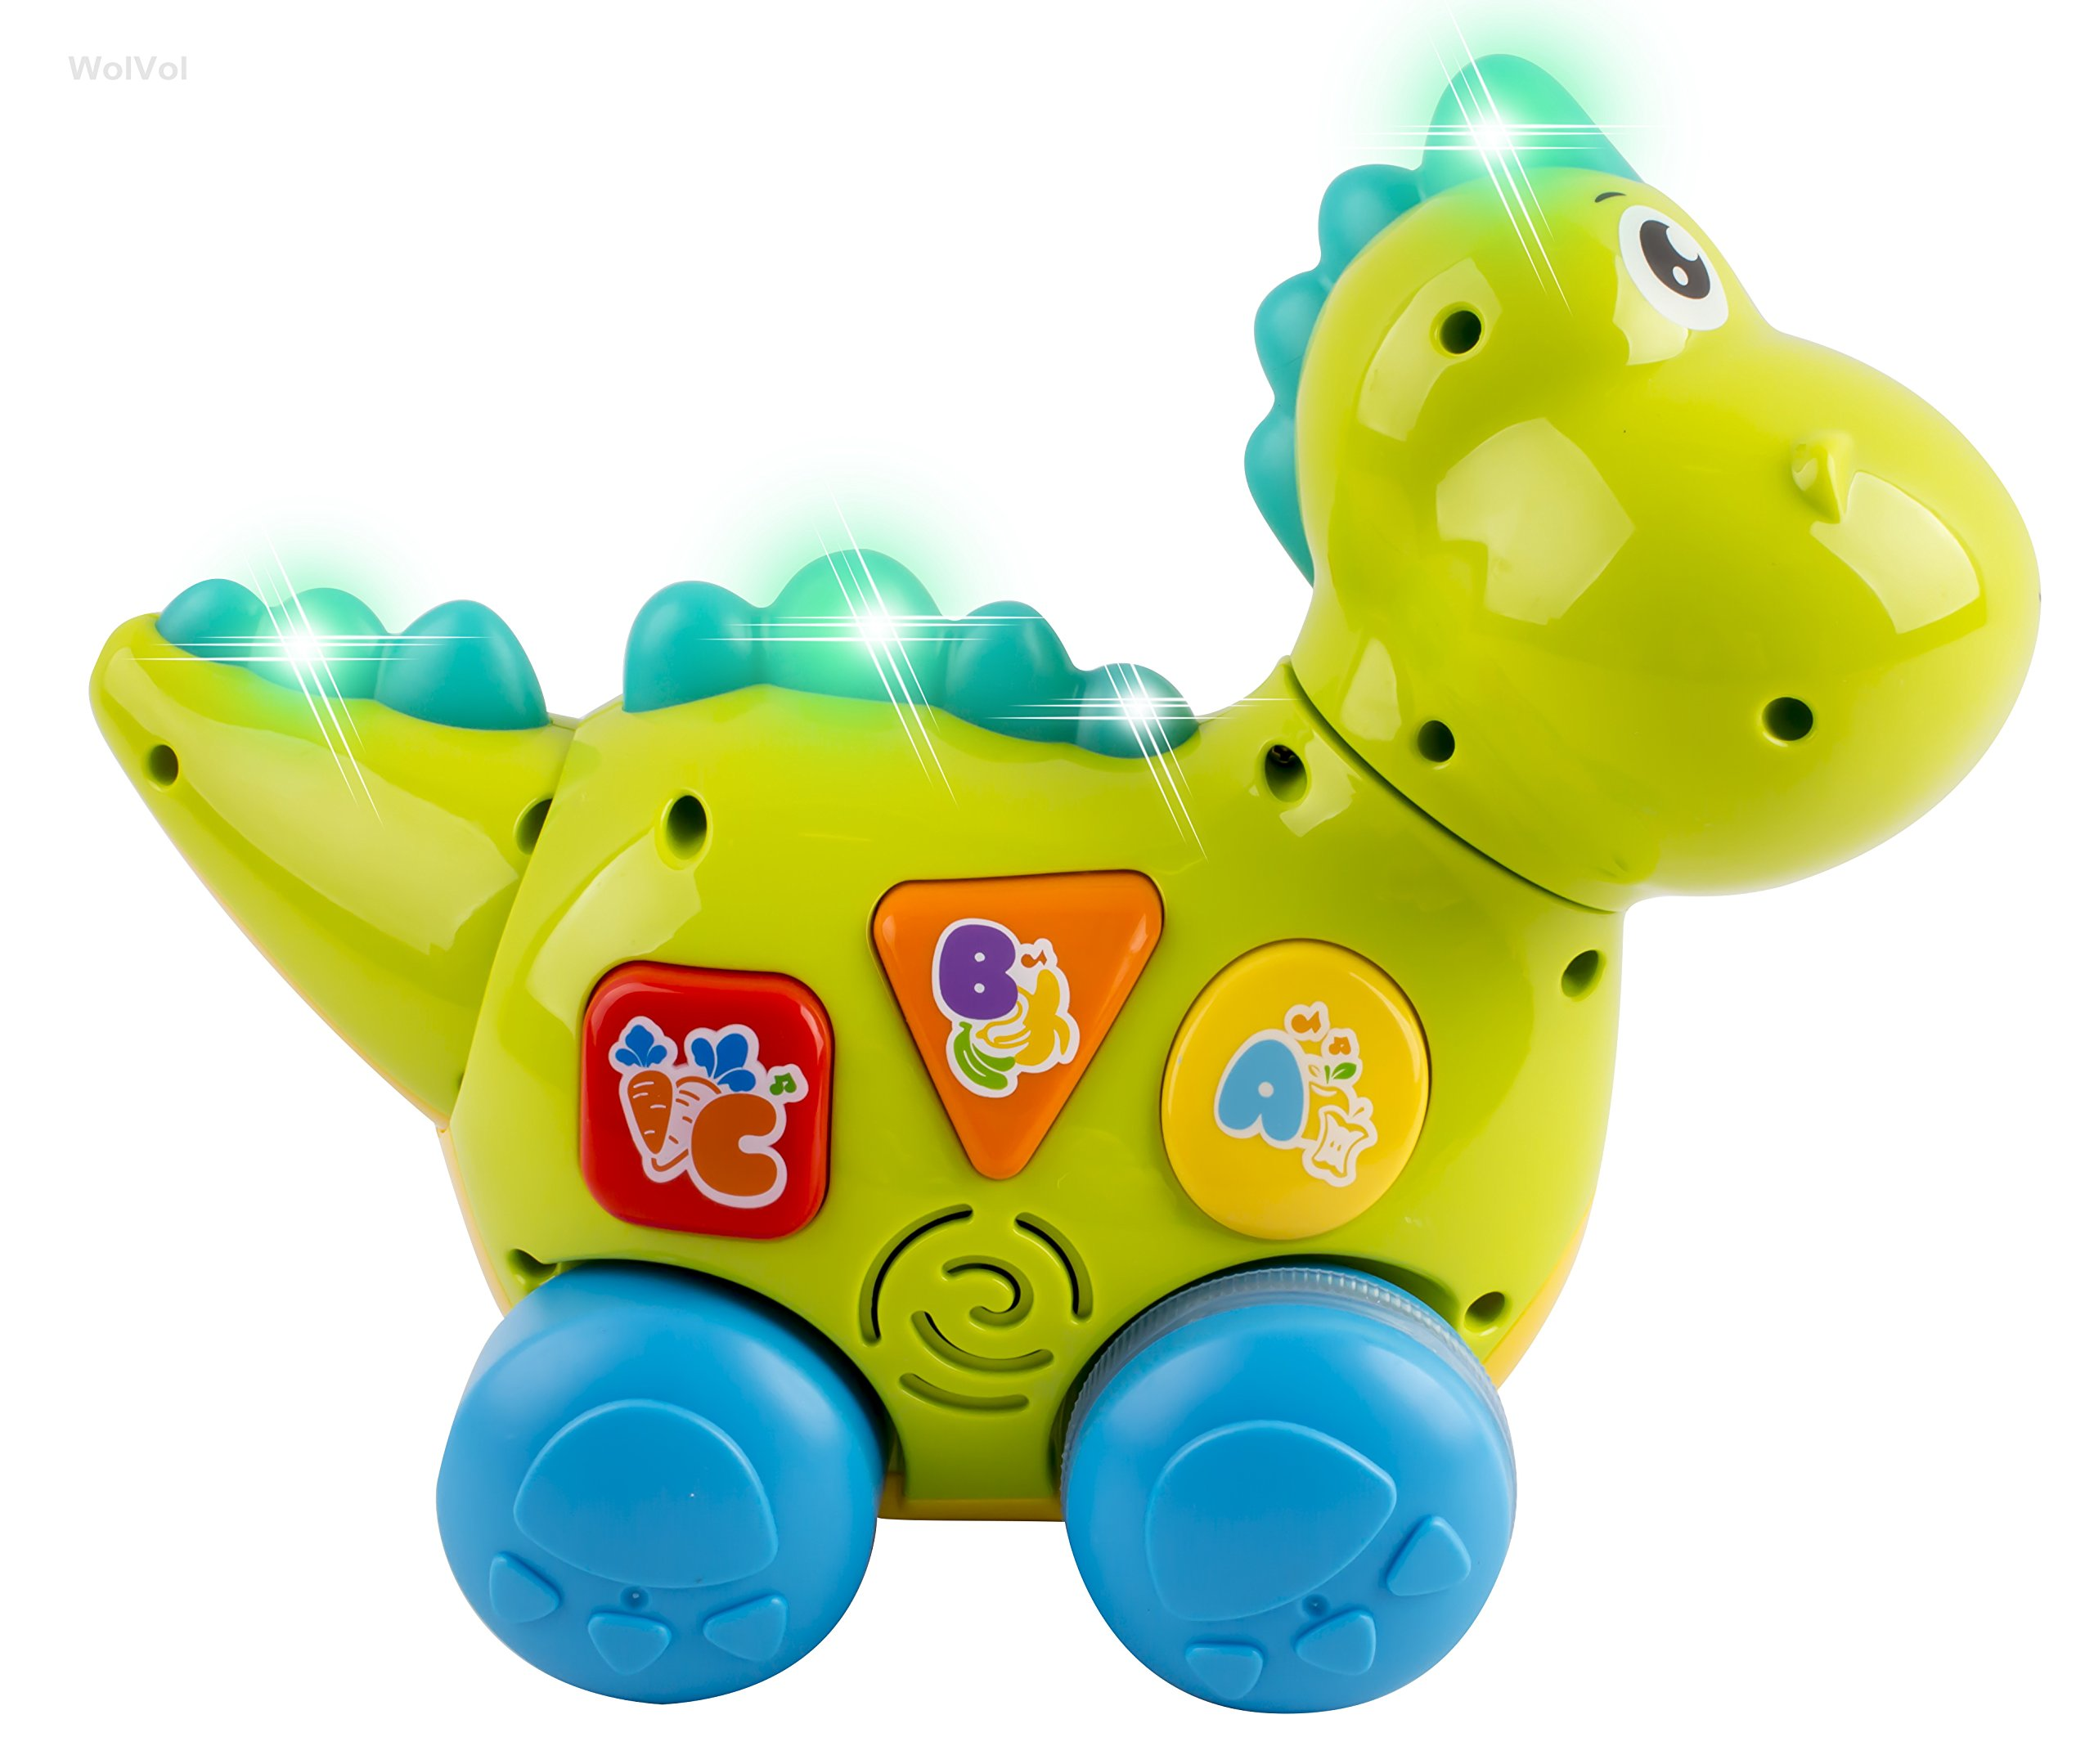 WolVol Talking Dinosaur Toy with Lights and Sounds for Kids - Teaching, Learning, Activity, Walking & Fun Action by WolVol (Image #5)